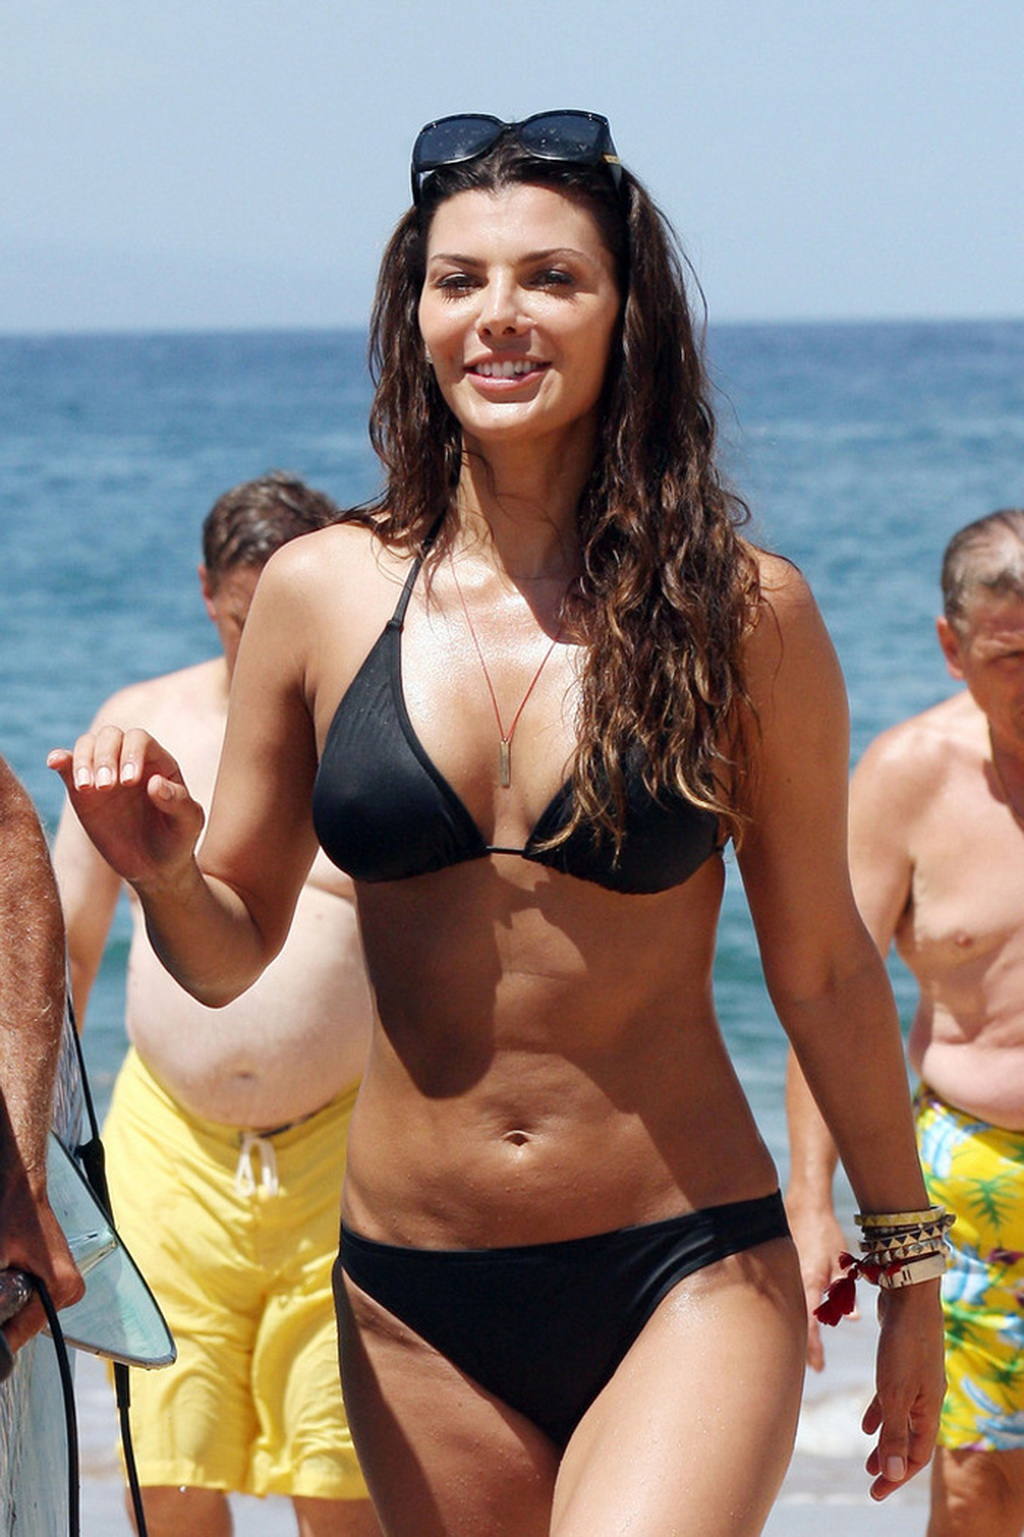 ali landry shows pokies in wet black bikini after paddling on a